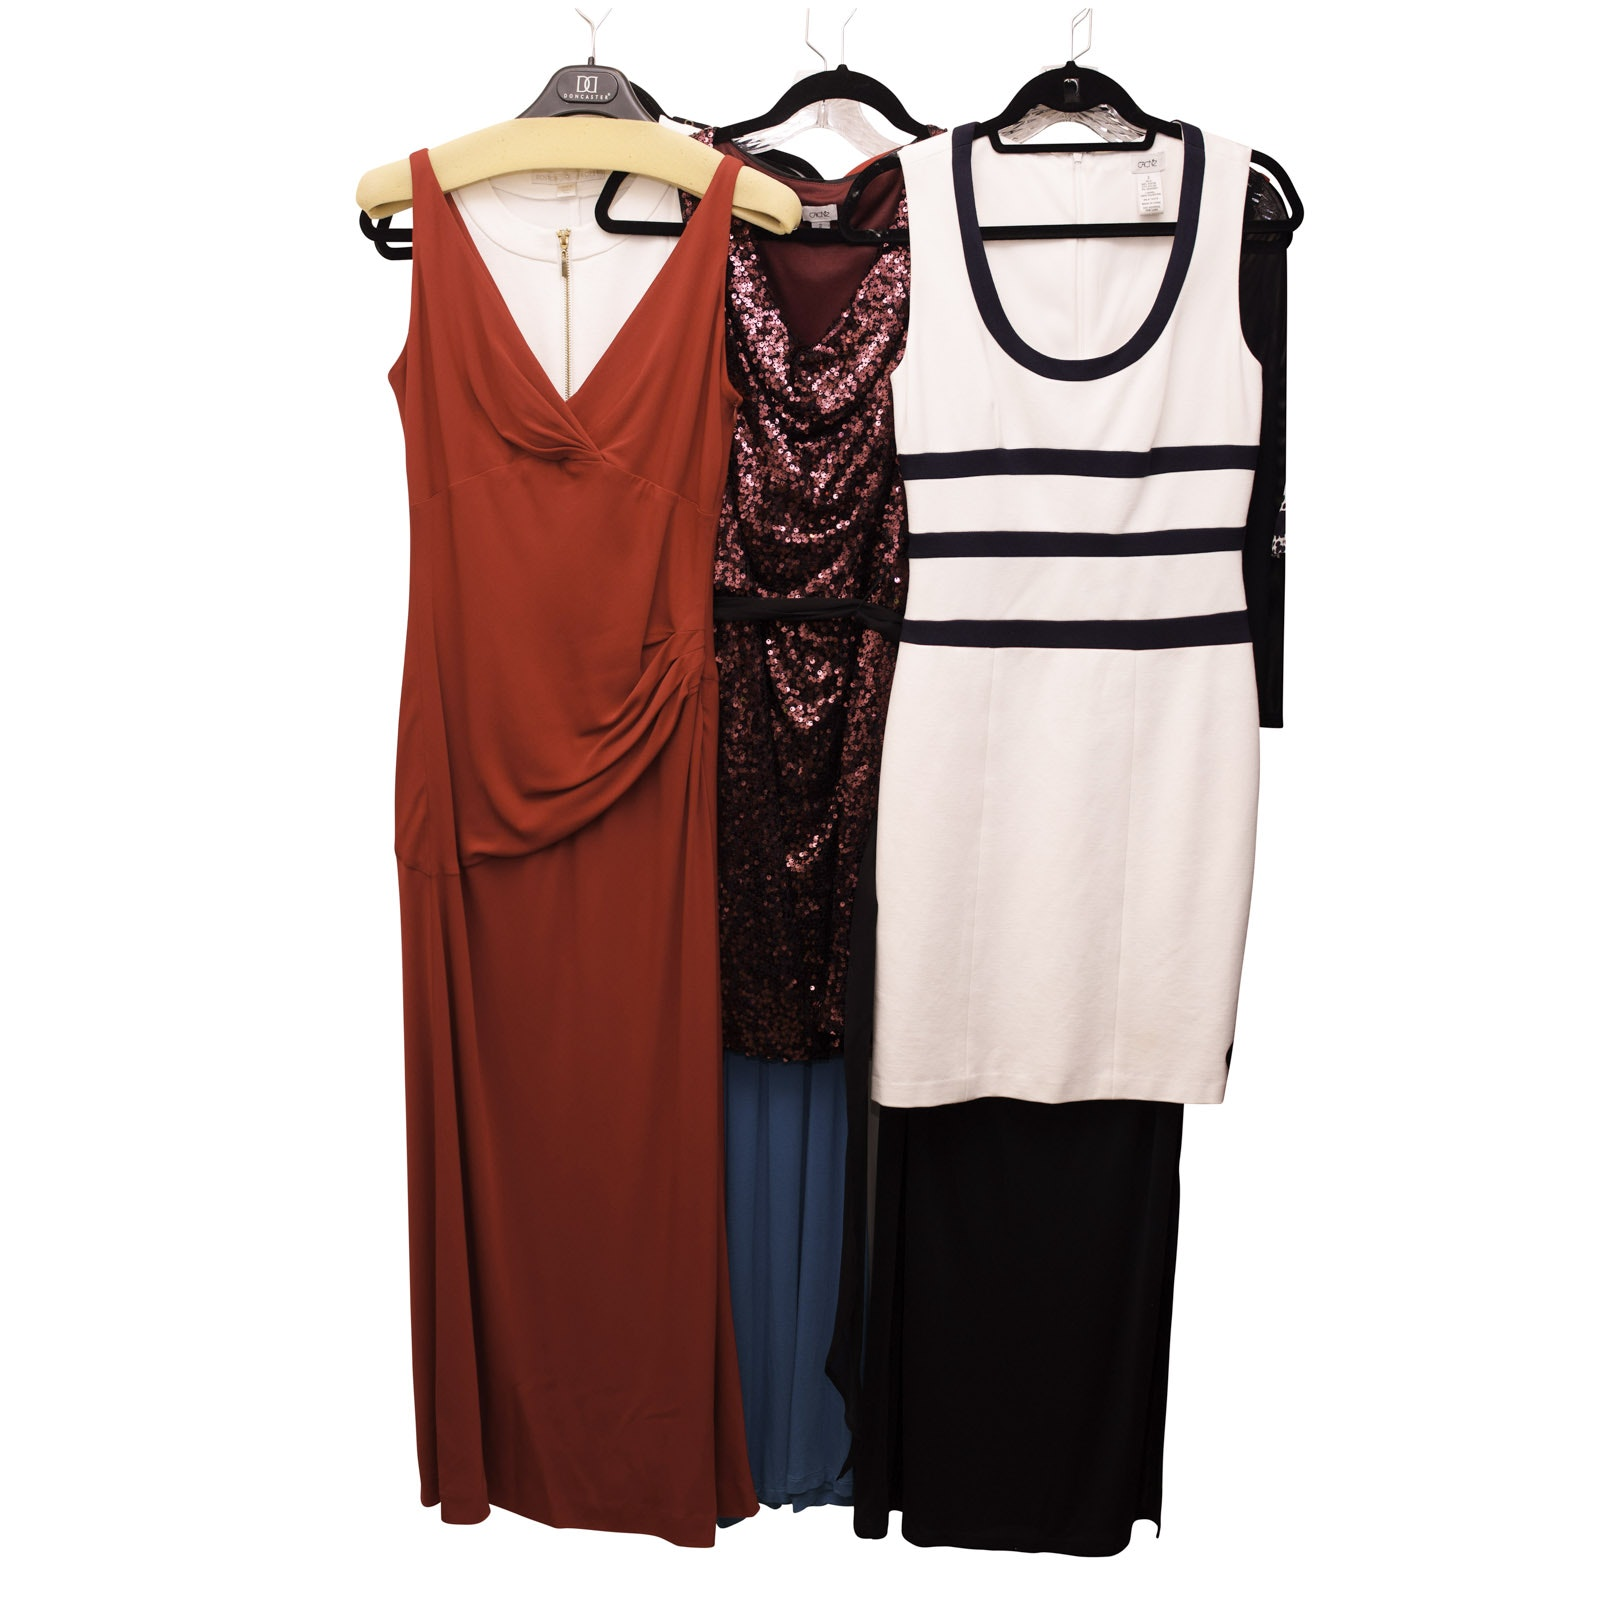 Women's Dresses featuring Caché, Calvin Klein, Doncaster and Boston Proper